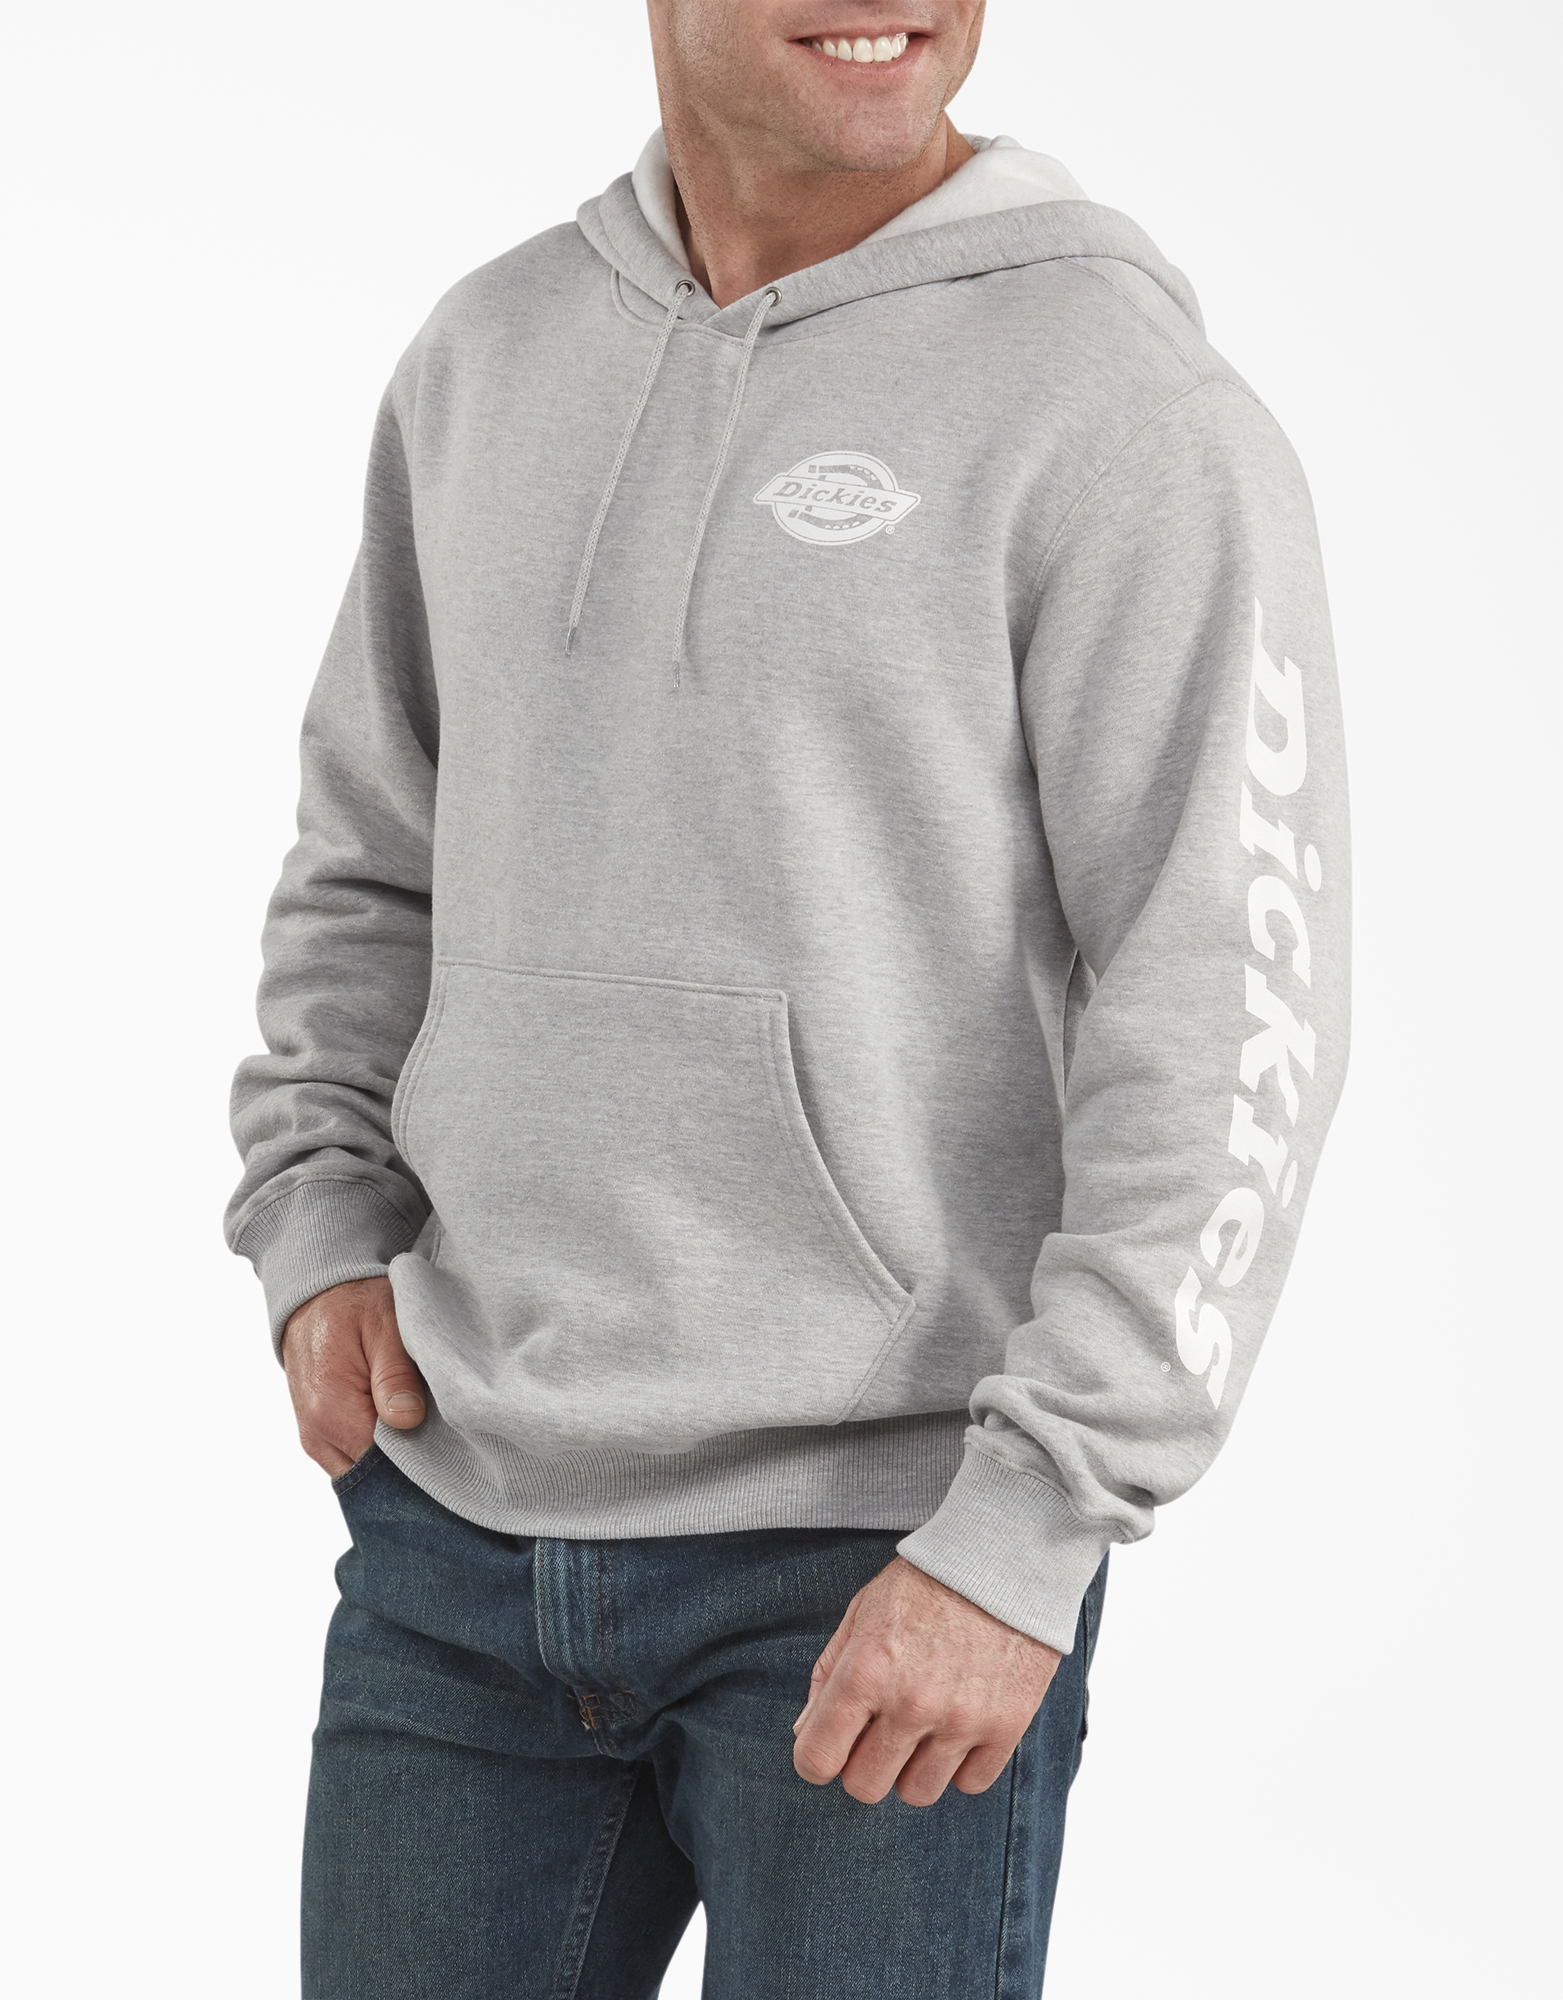 Graphic Fleece Hoodie - Heather Gray (HG)